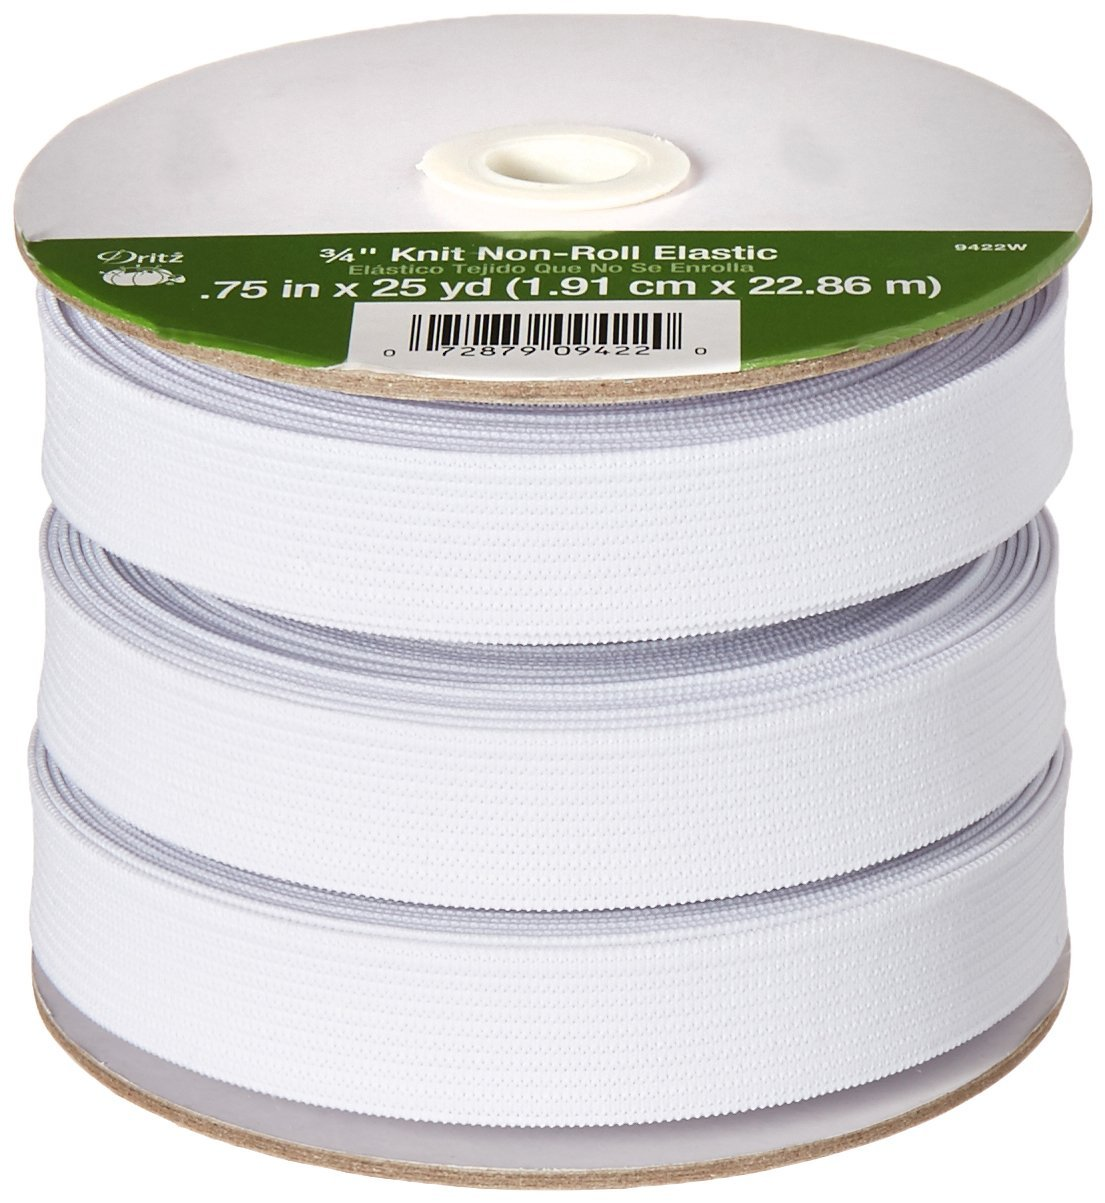 Dritz 9323W Non-Roll Knit Elastic 1-Inch by 30-Inch White